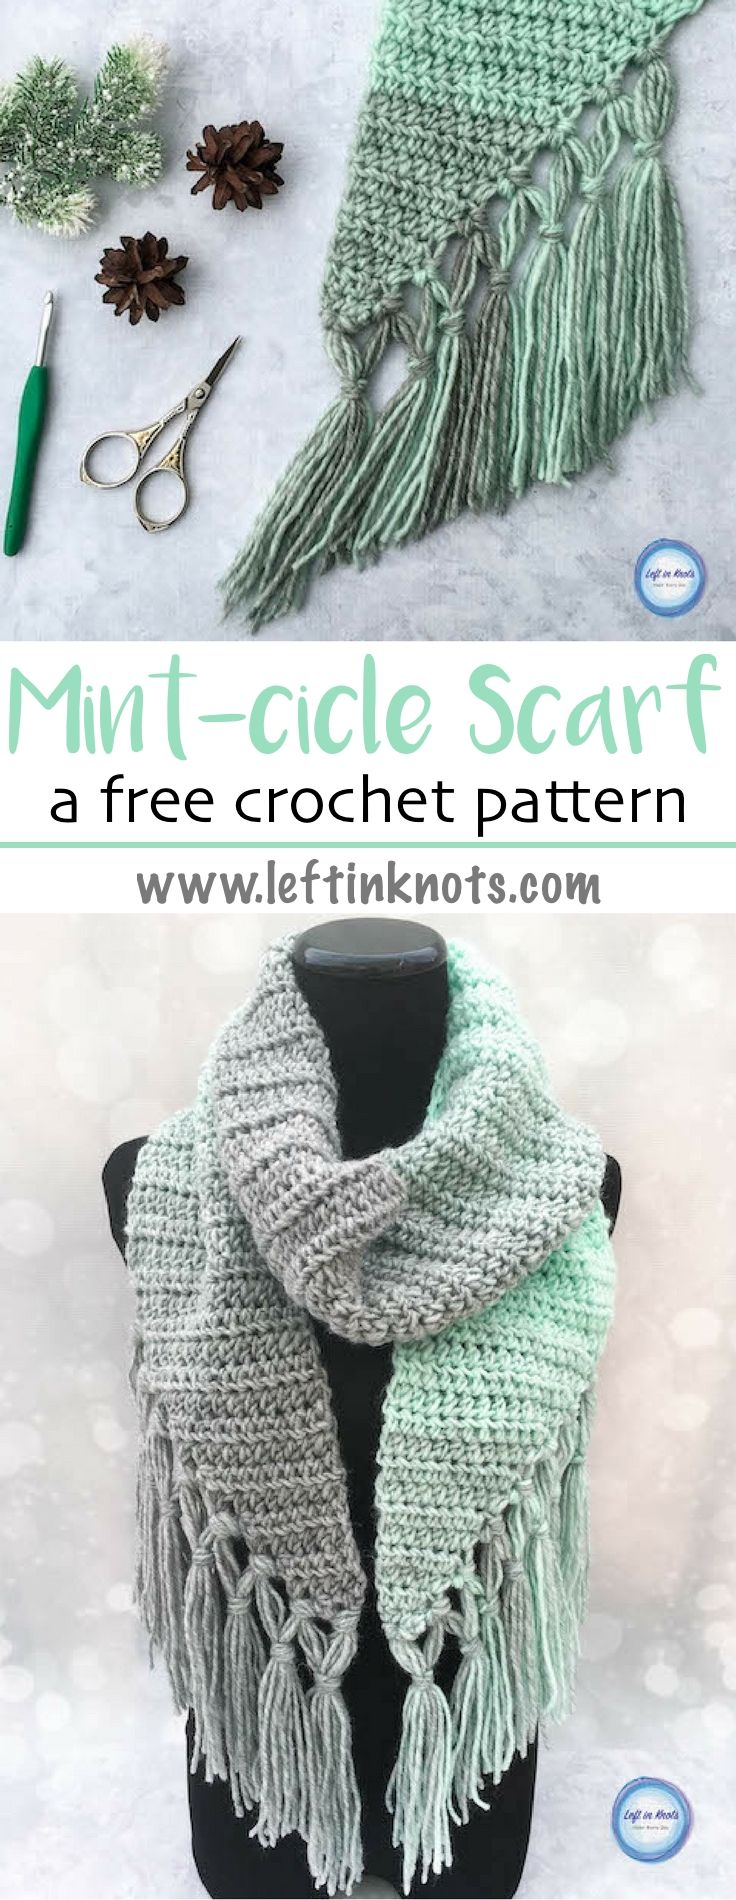 Mint-cicle Scarf Crochet Pattern | Free crochet, Yarns and Lions